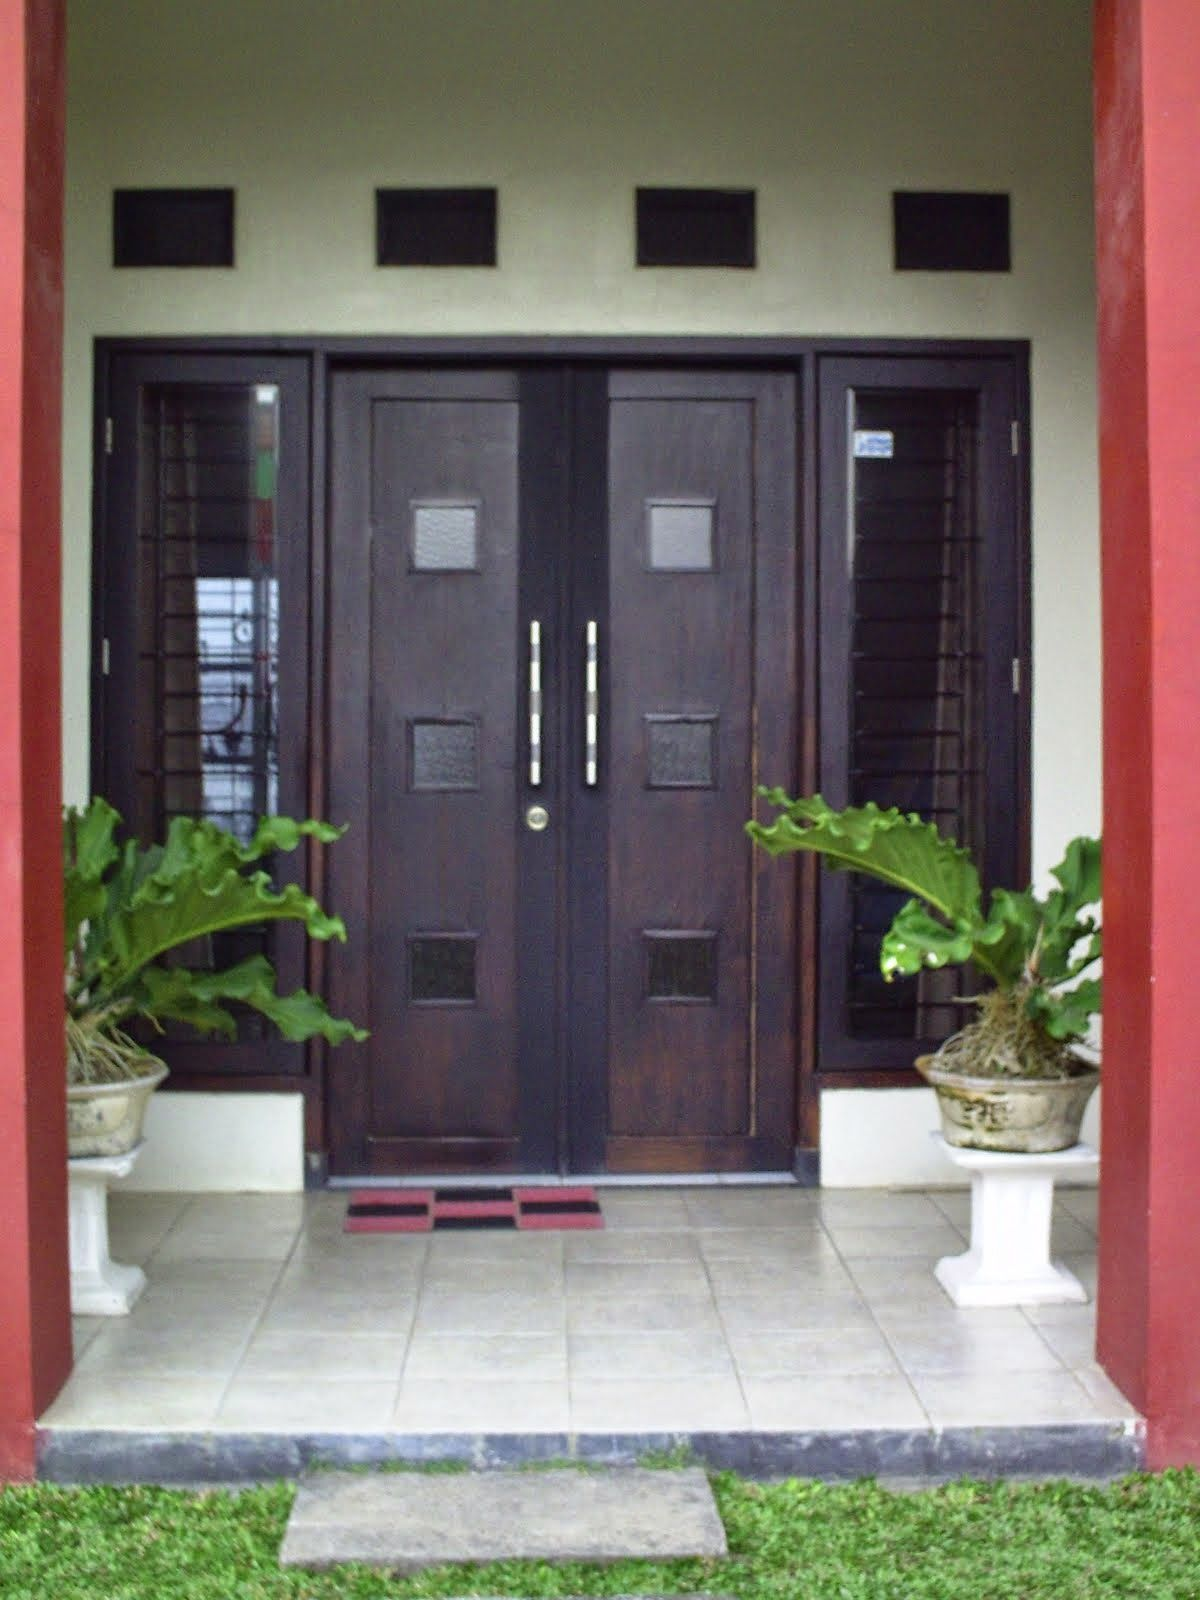 Gambar Pintu Rumah Minimalis Projects To Try Home Decor Home House